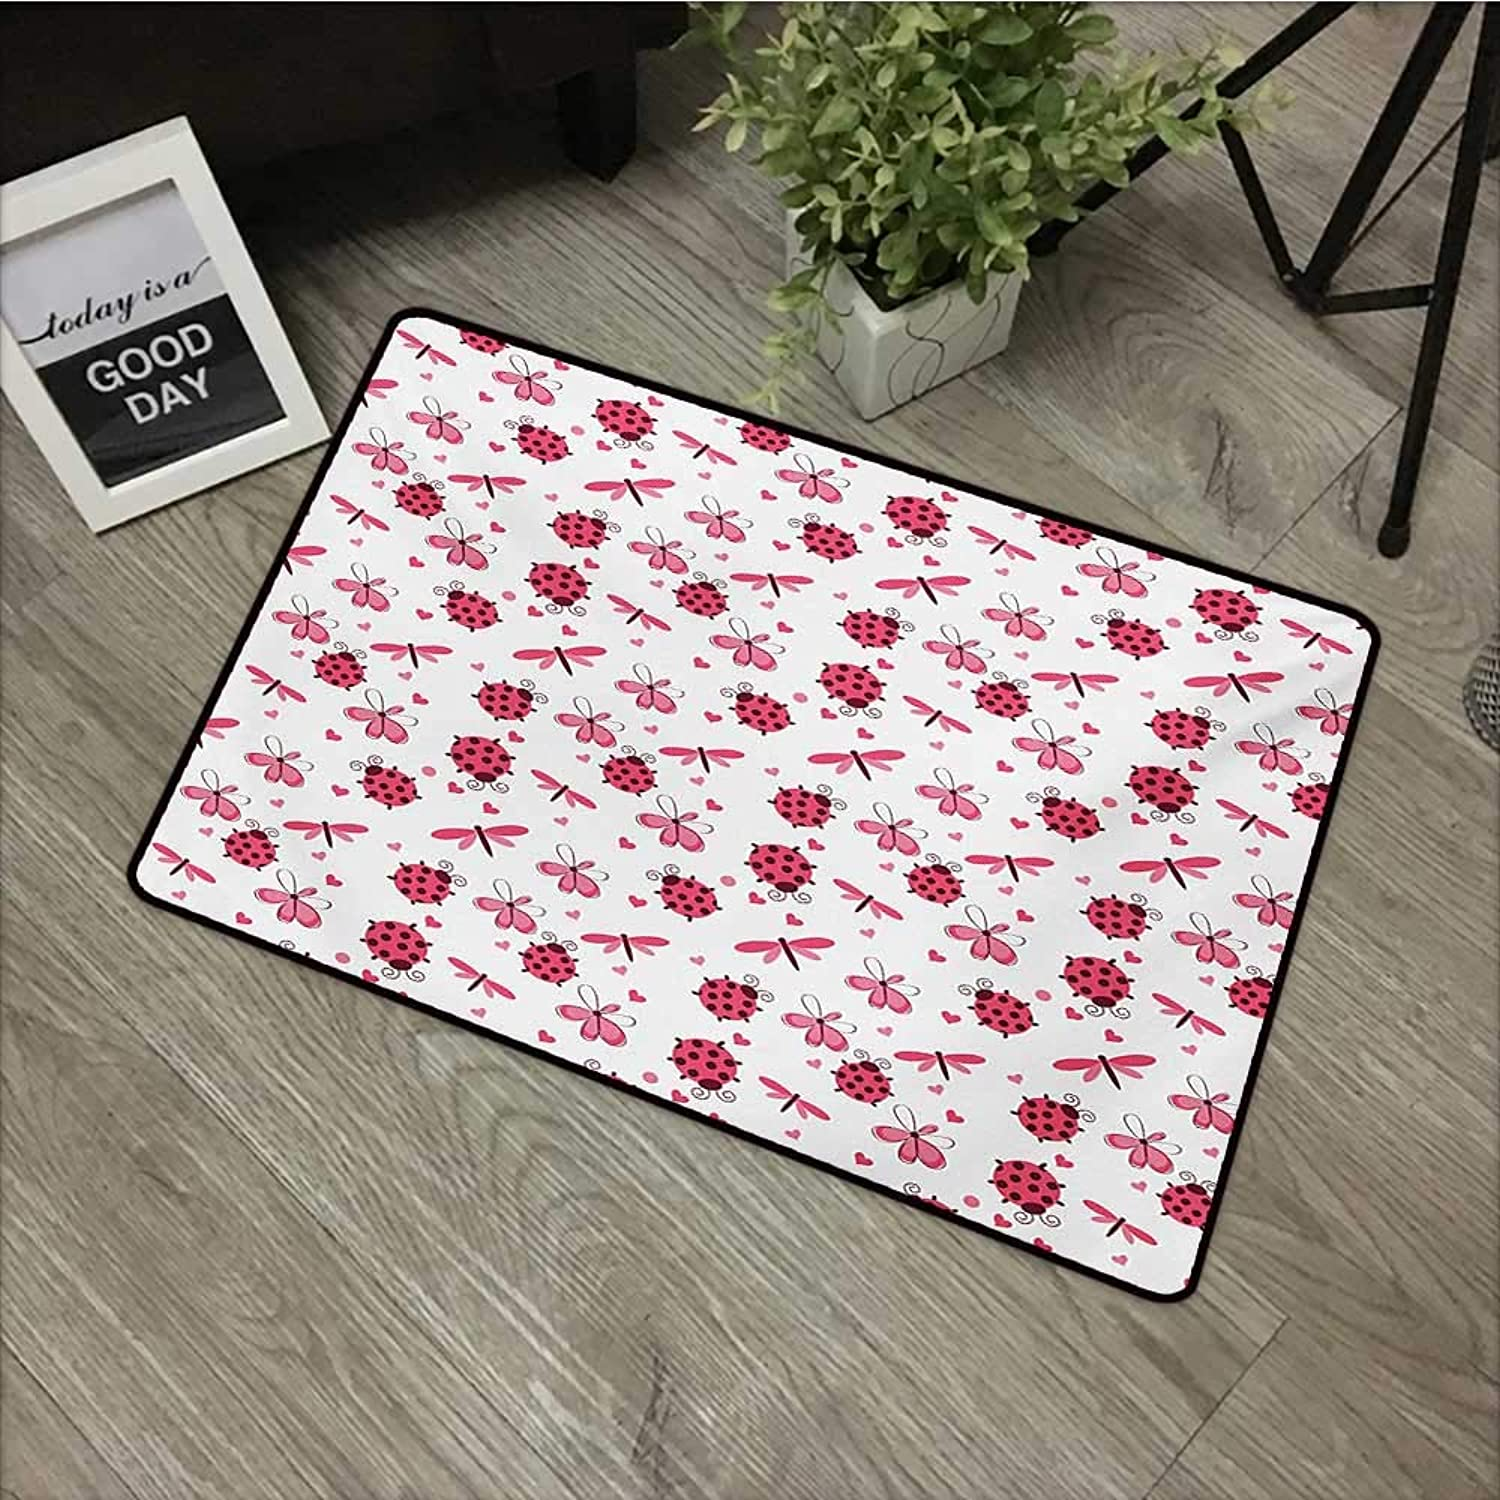 Pool Anti-Slip Door mat W35 x L59 INCH Ladybugs,Domed Back Round Ladybugs with Hearts Flowers Dragonflies Romantic Wings Pattern,Red White Non-Slip Door Mat Carpet